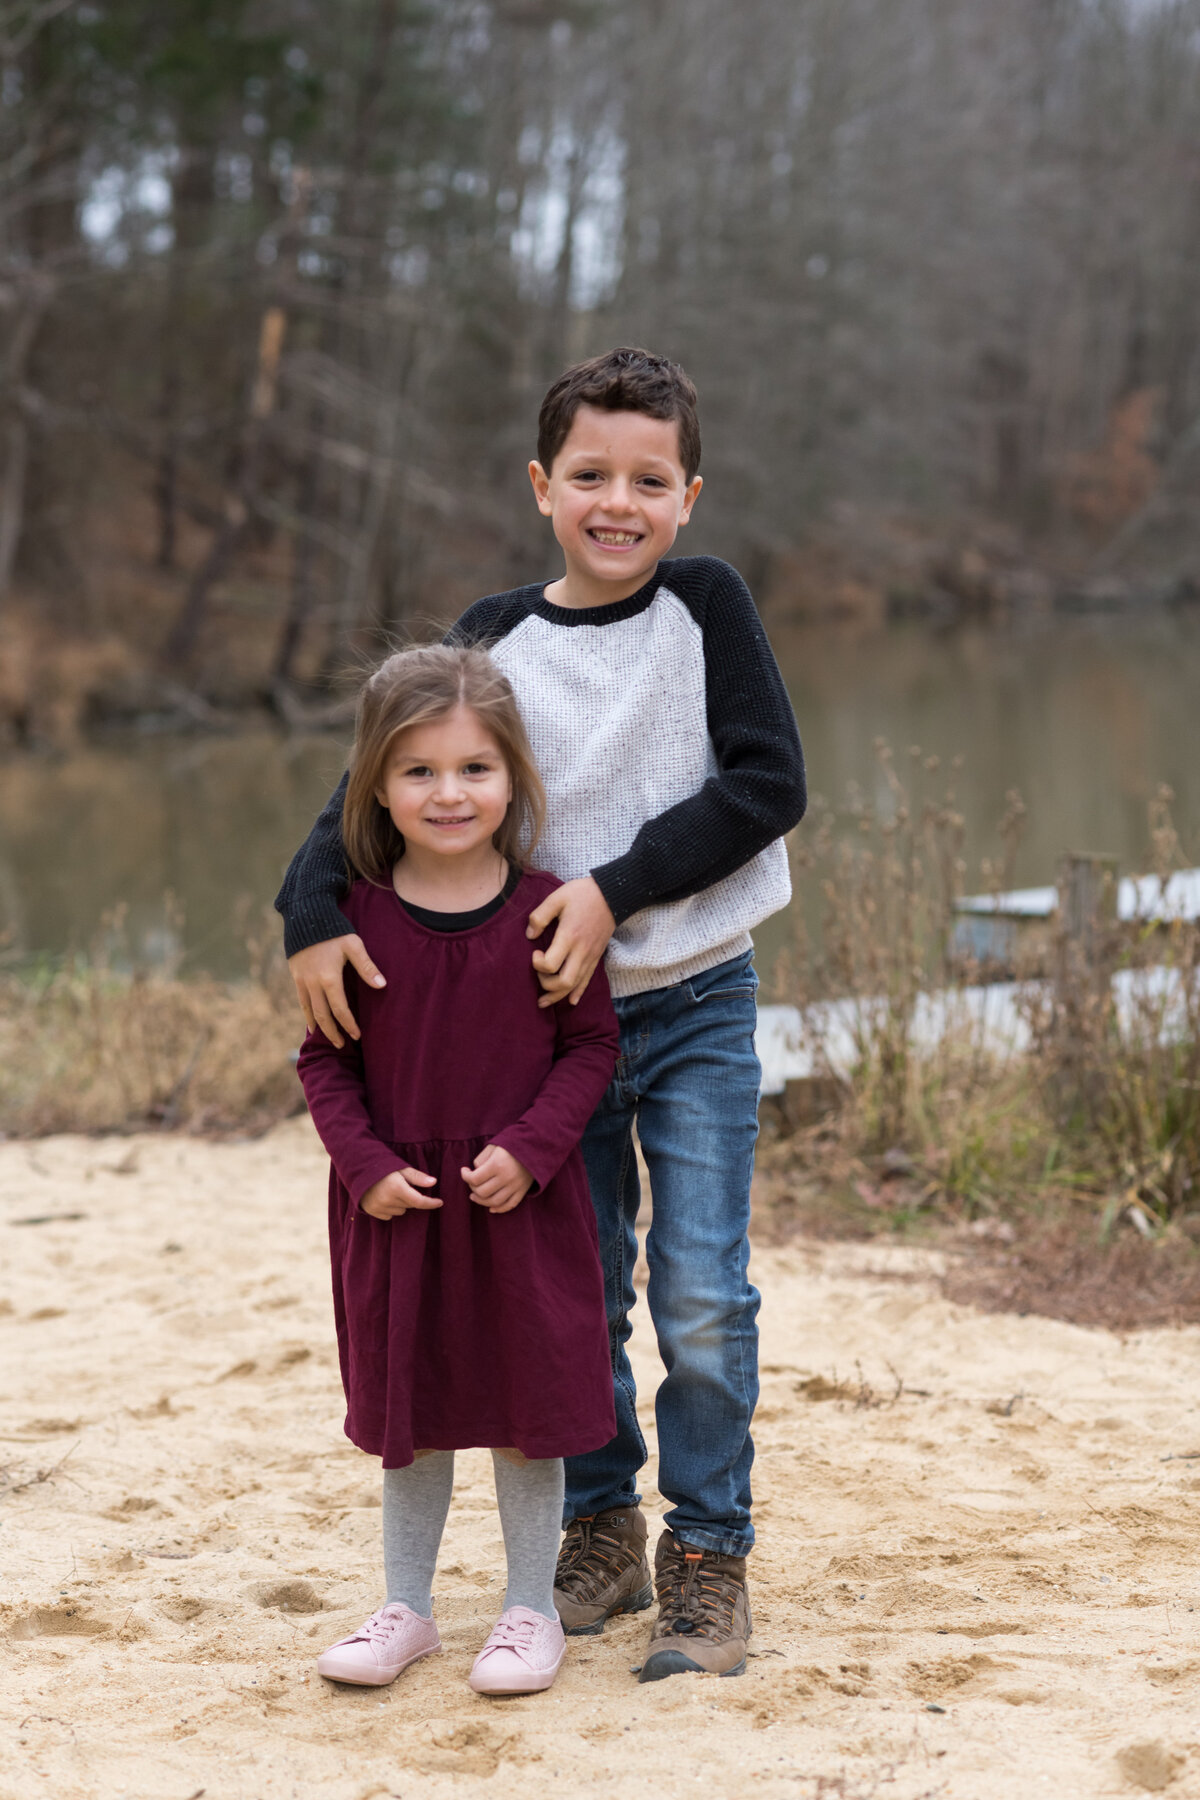 Wendy_Zook_Family_Photography_McGarrah_5